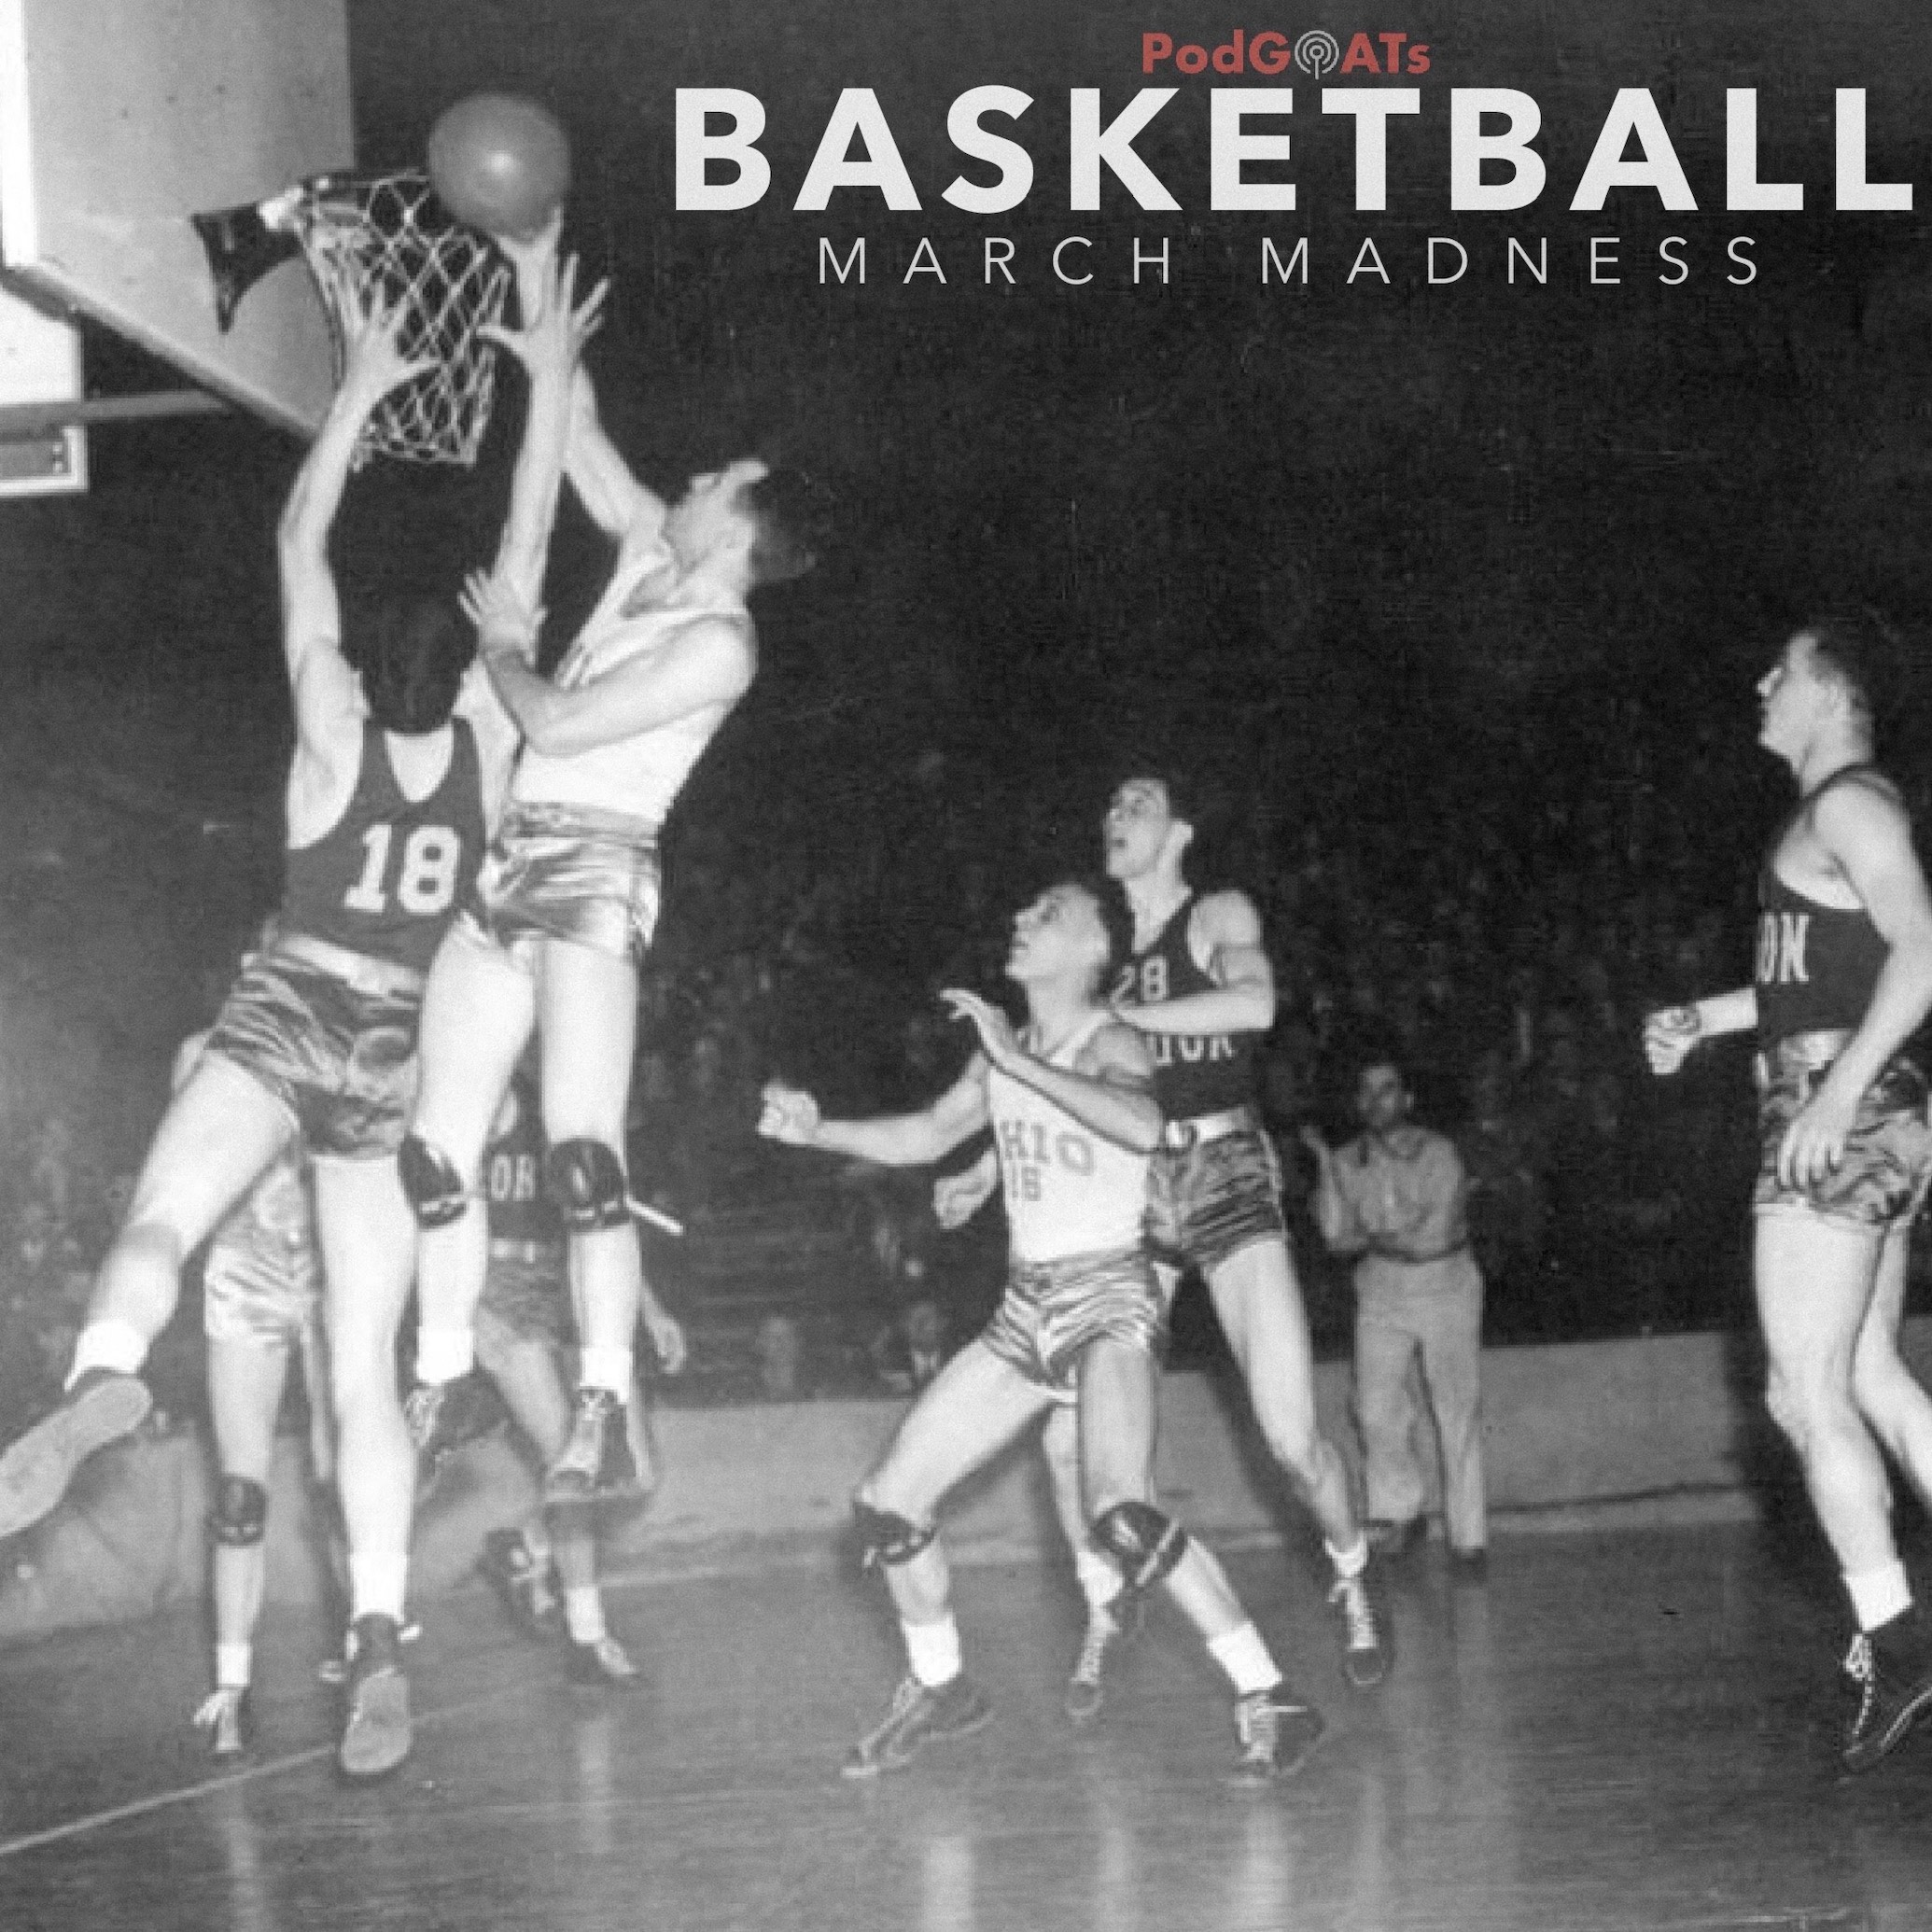 Basketball: History of March Madness